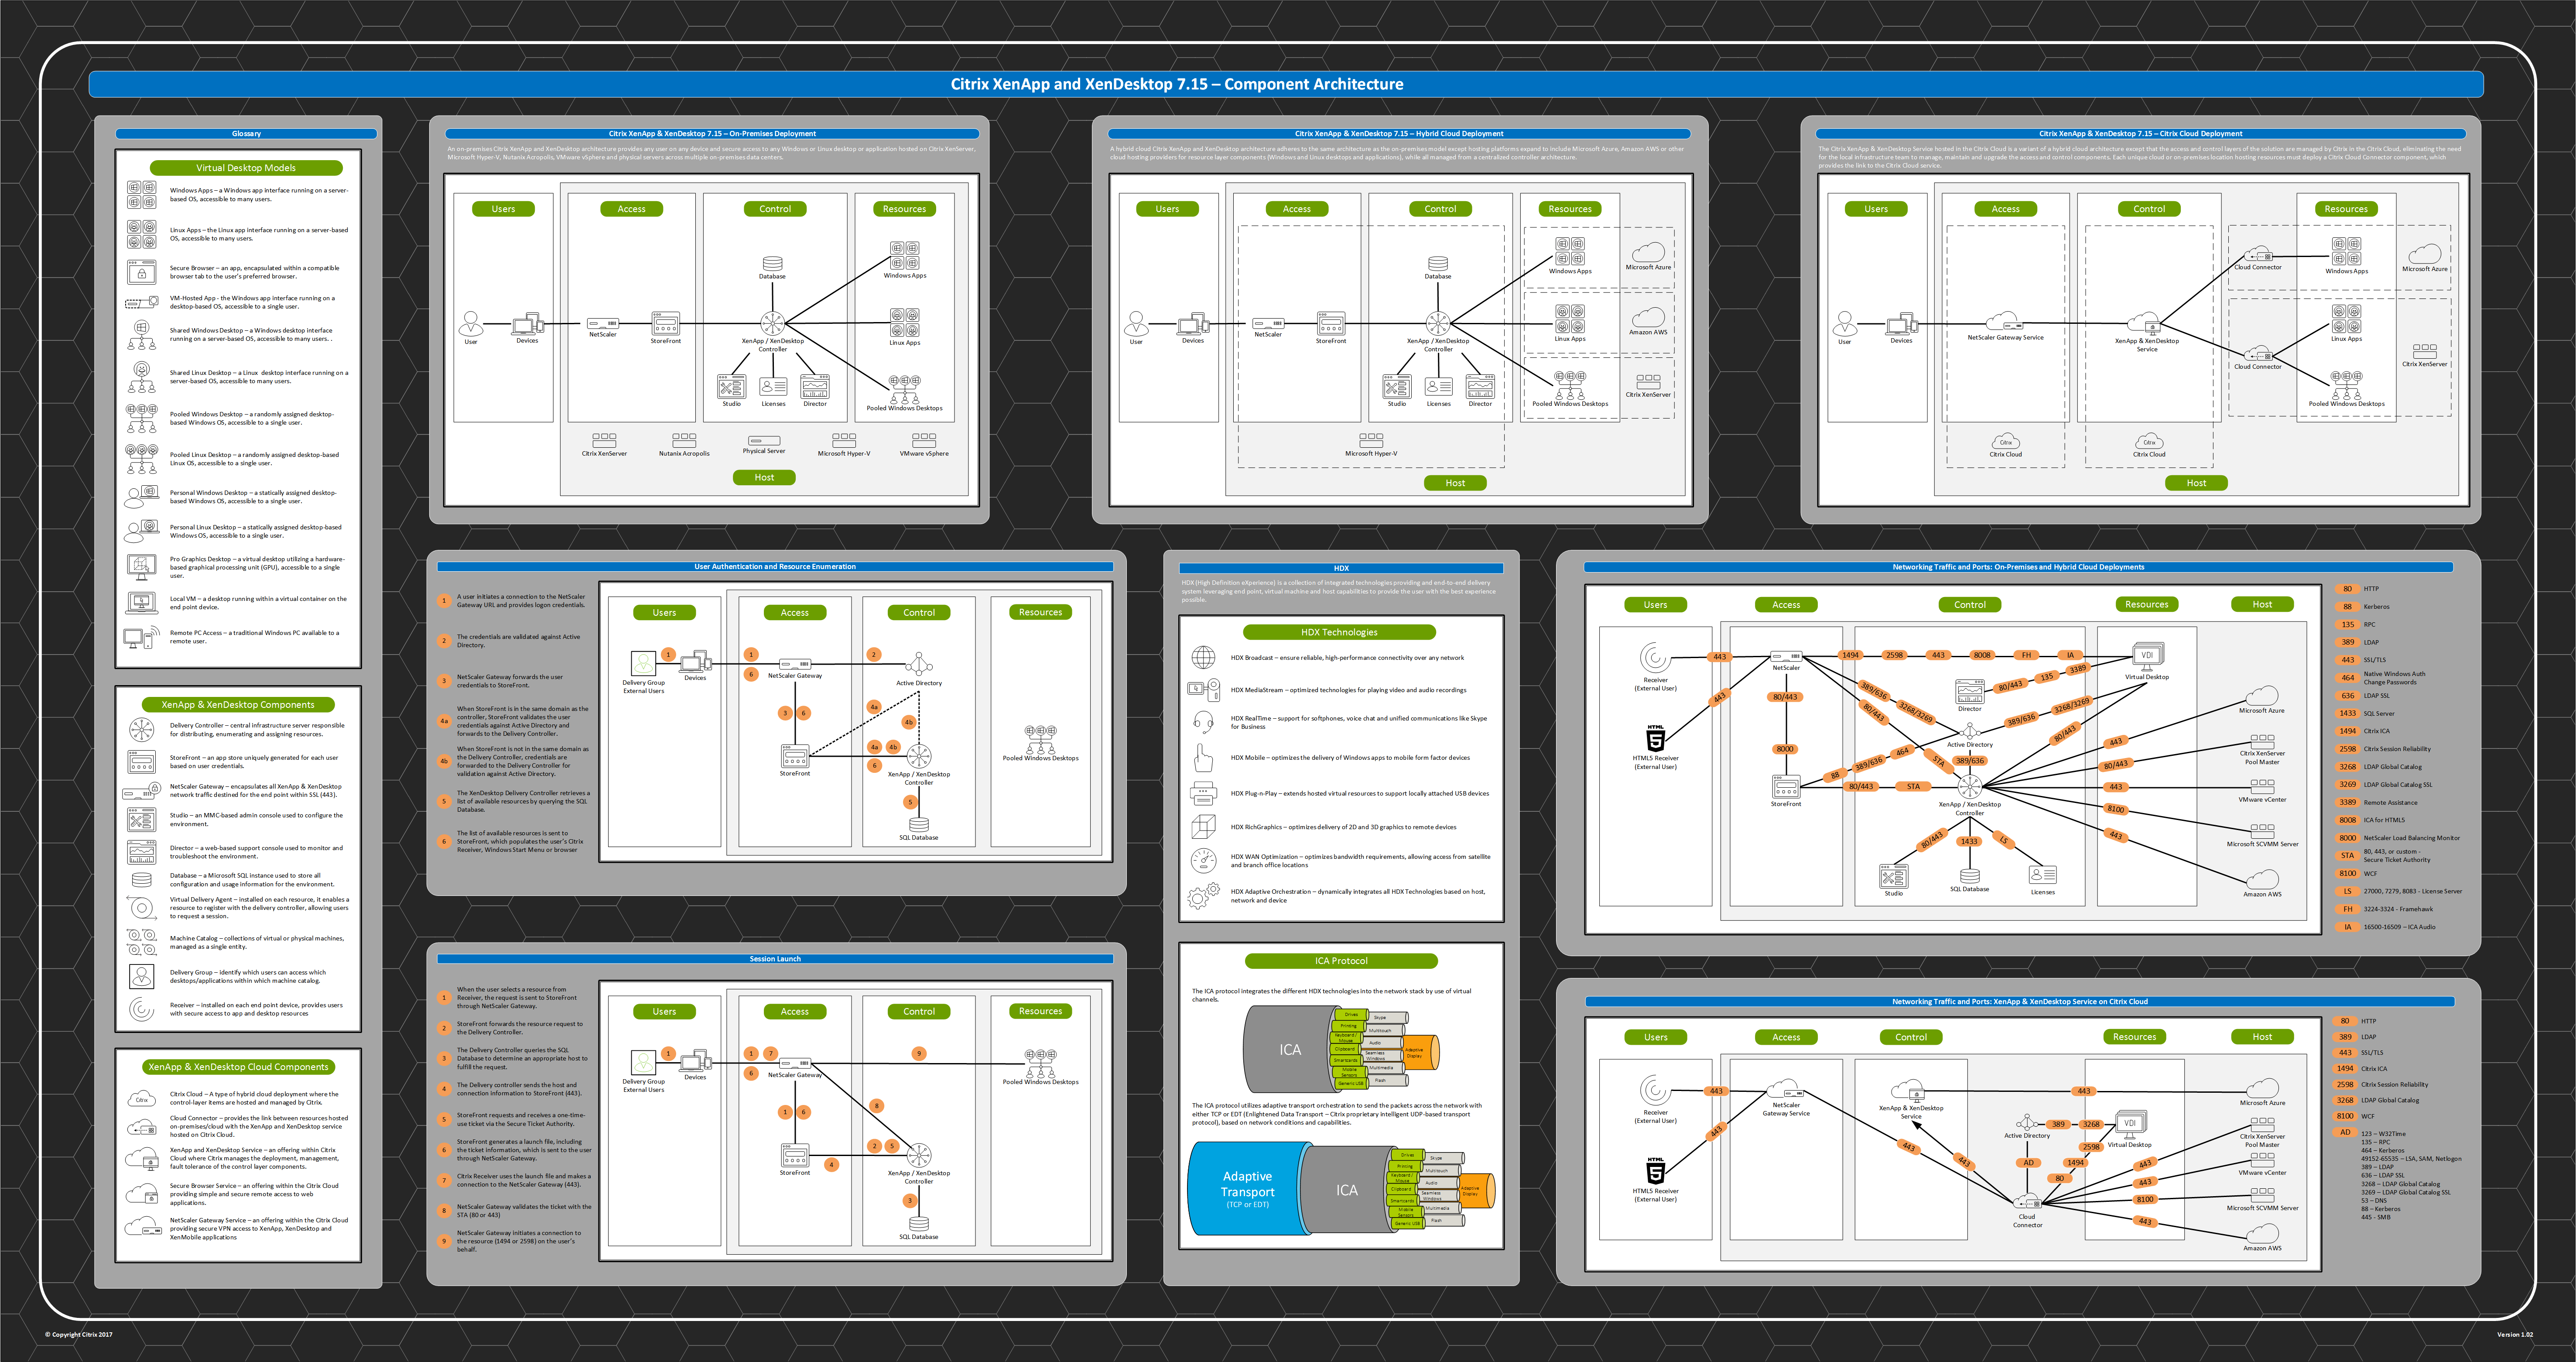 Xenapp Xendesktop Component Architecture Poster Citrix Blogs How To Create Diagrams For Amazon Web Services These Questions Over And Again I Decided The Which Contains